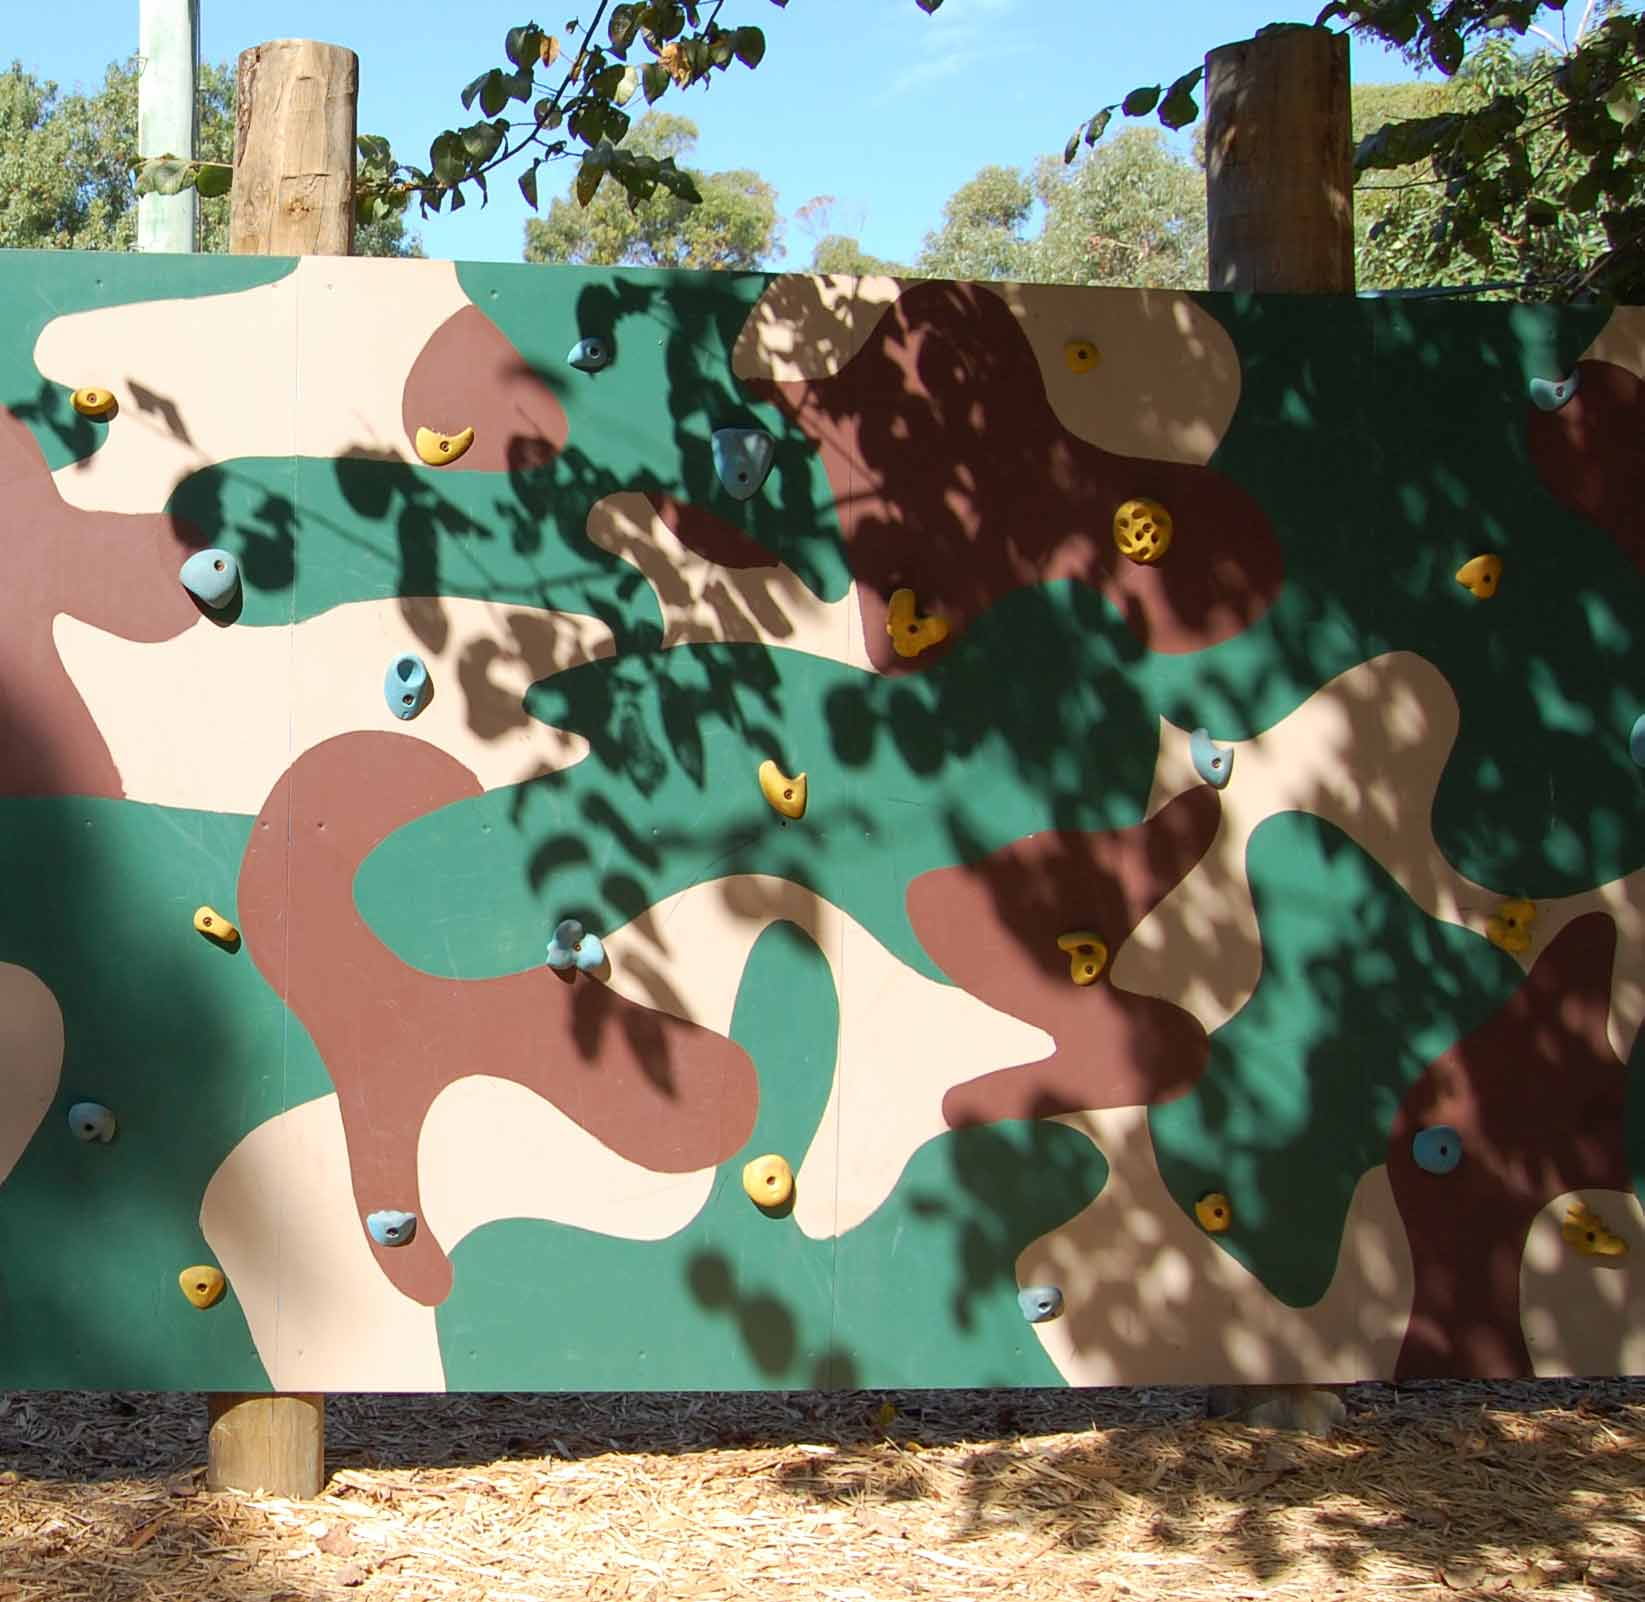 The traversing wall is painted in camouflage colours